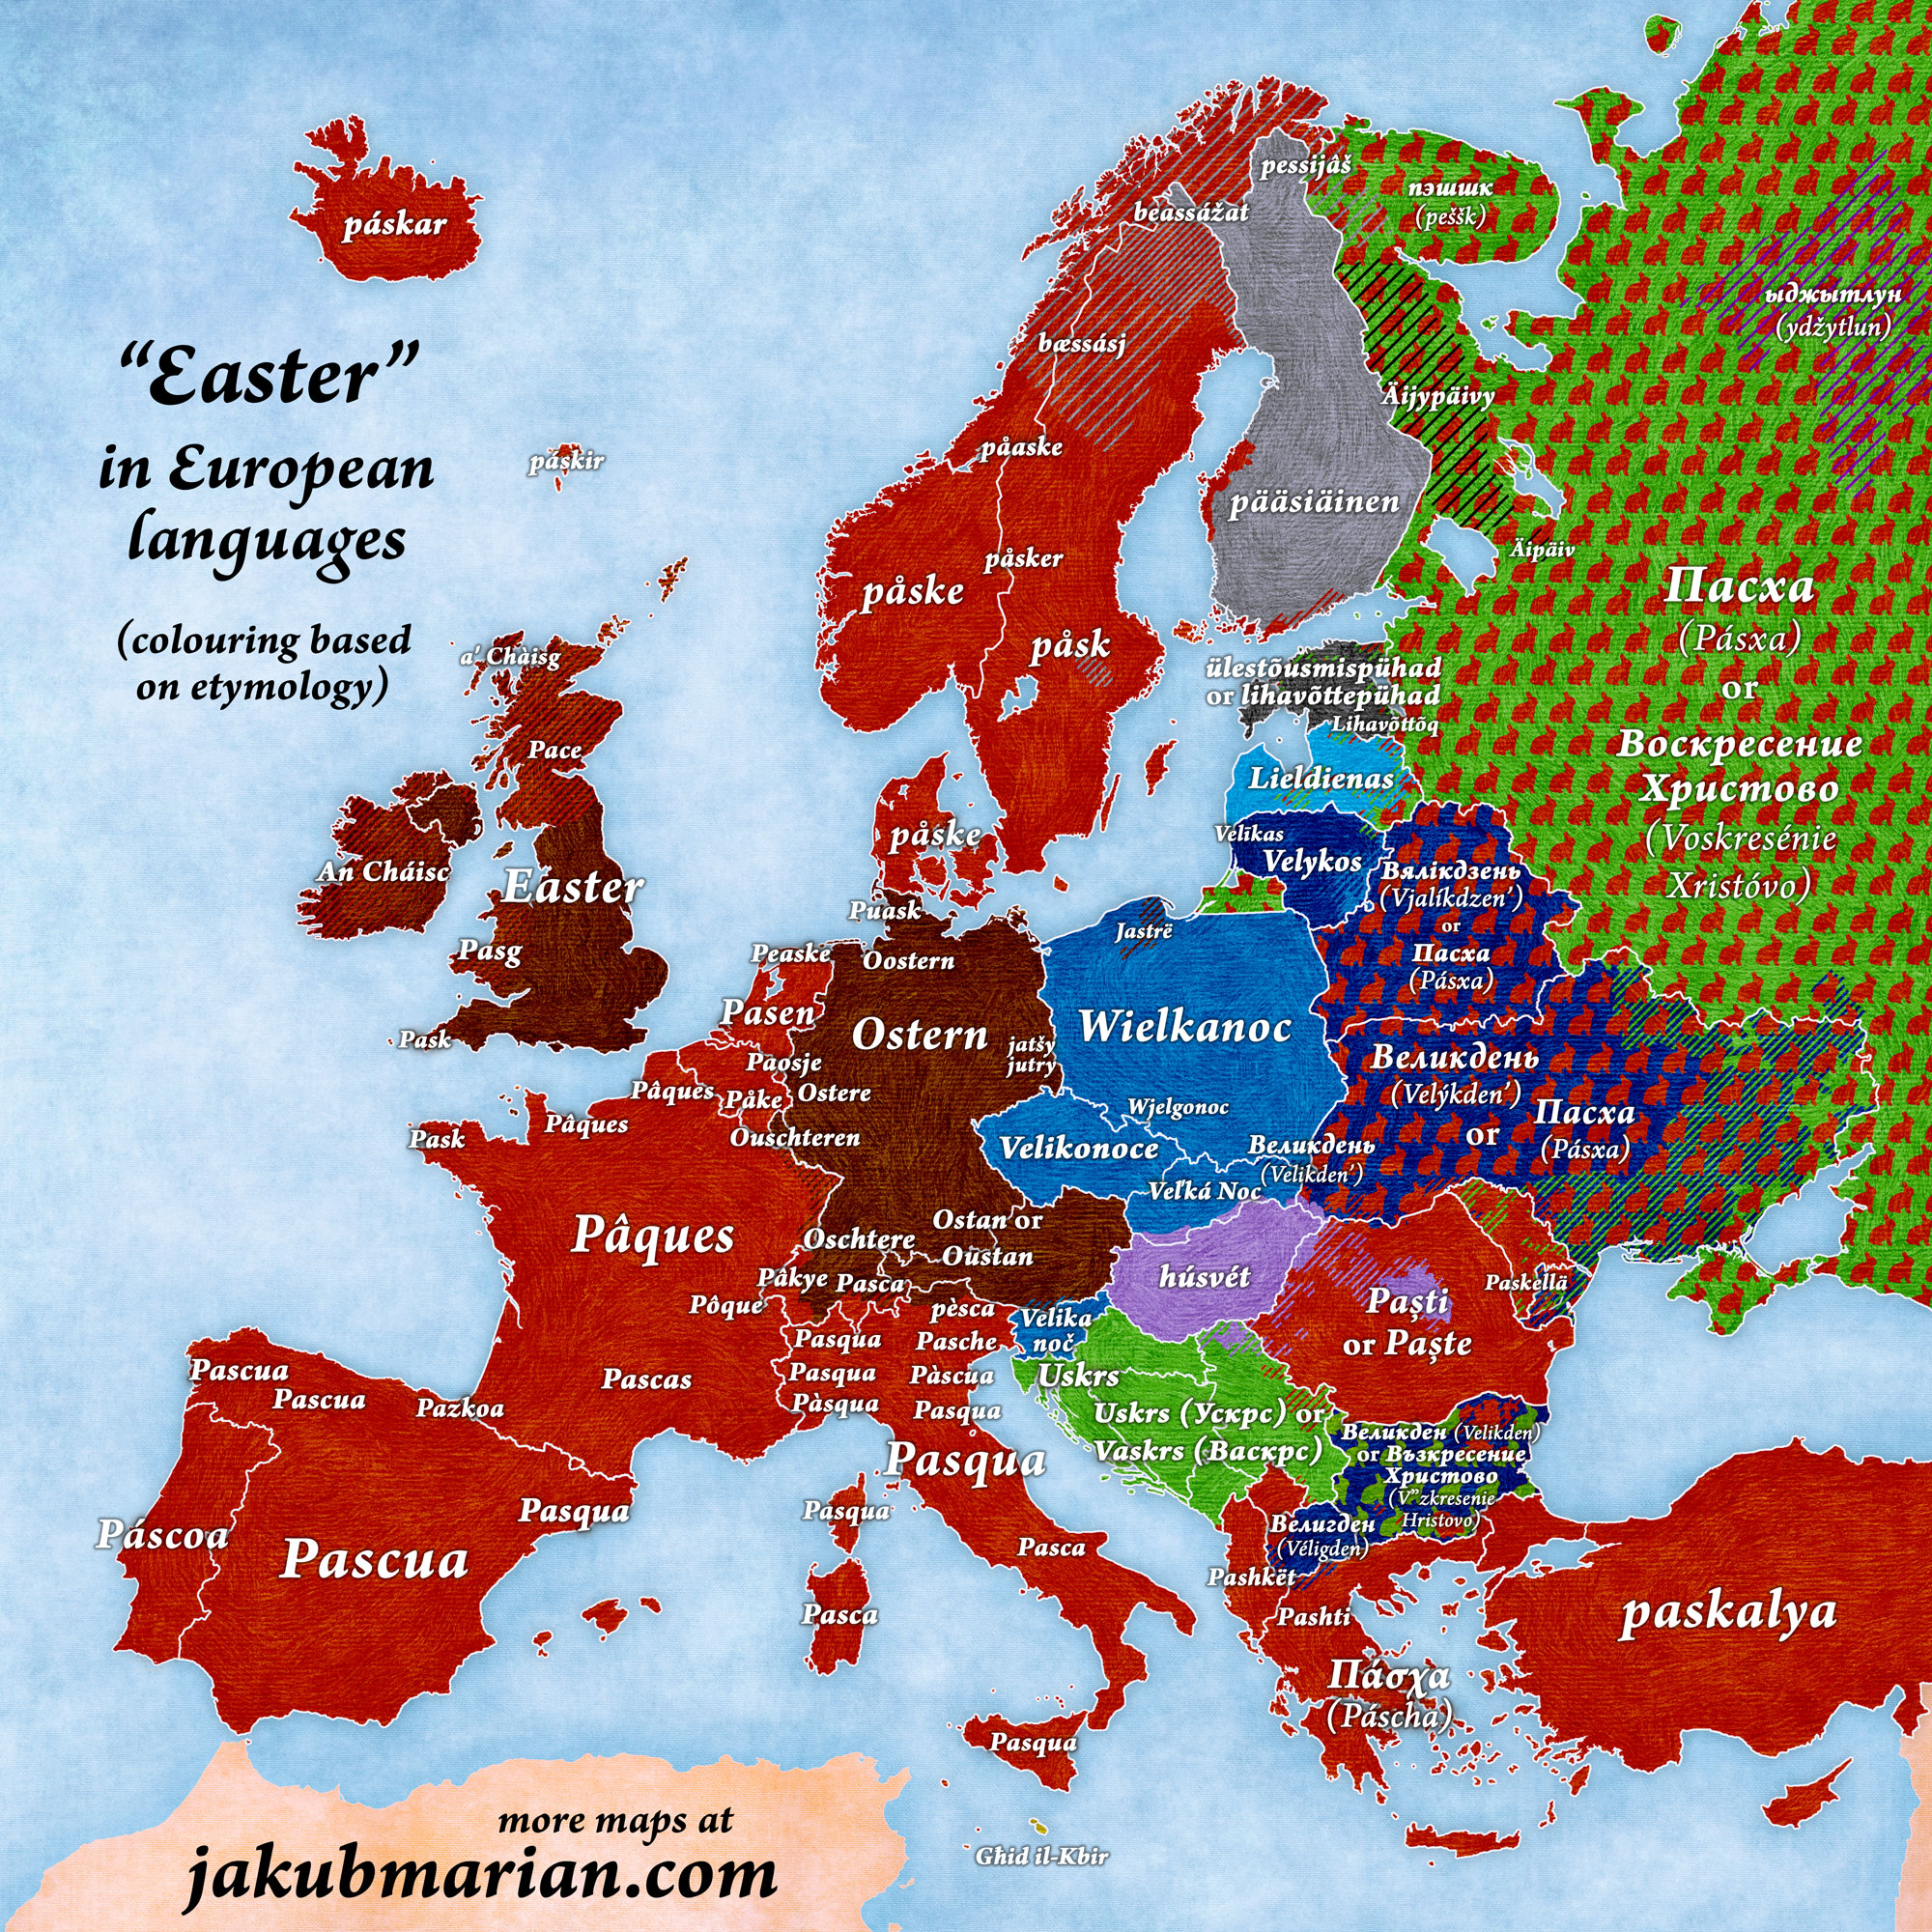 Easter in European languages